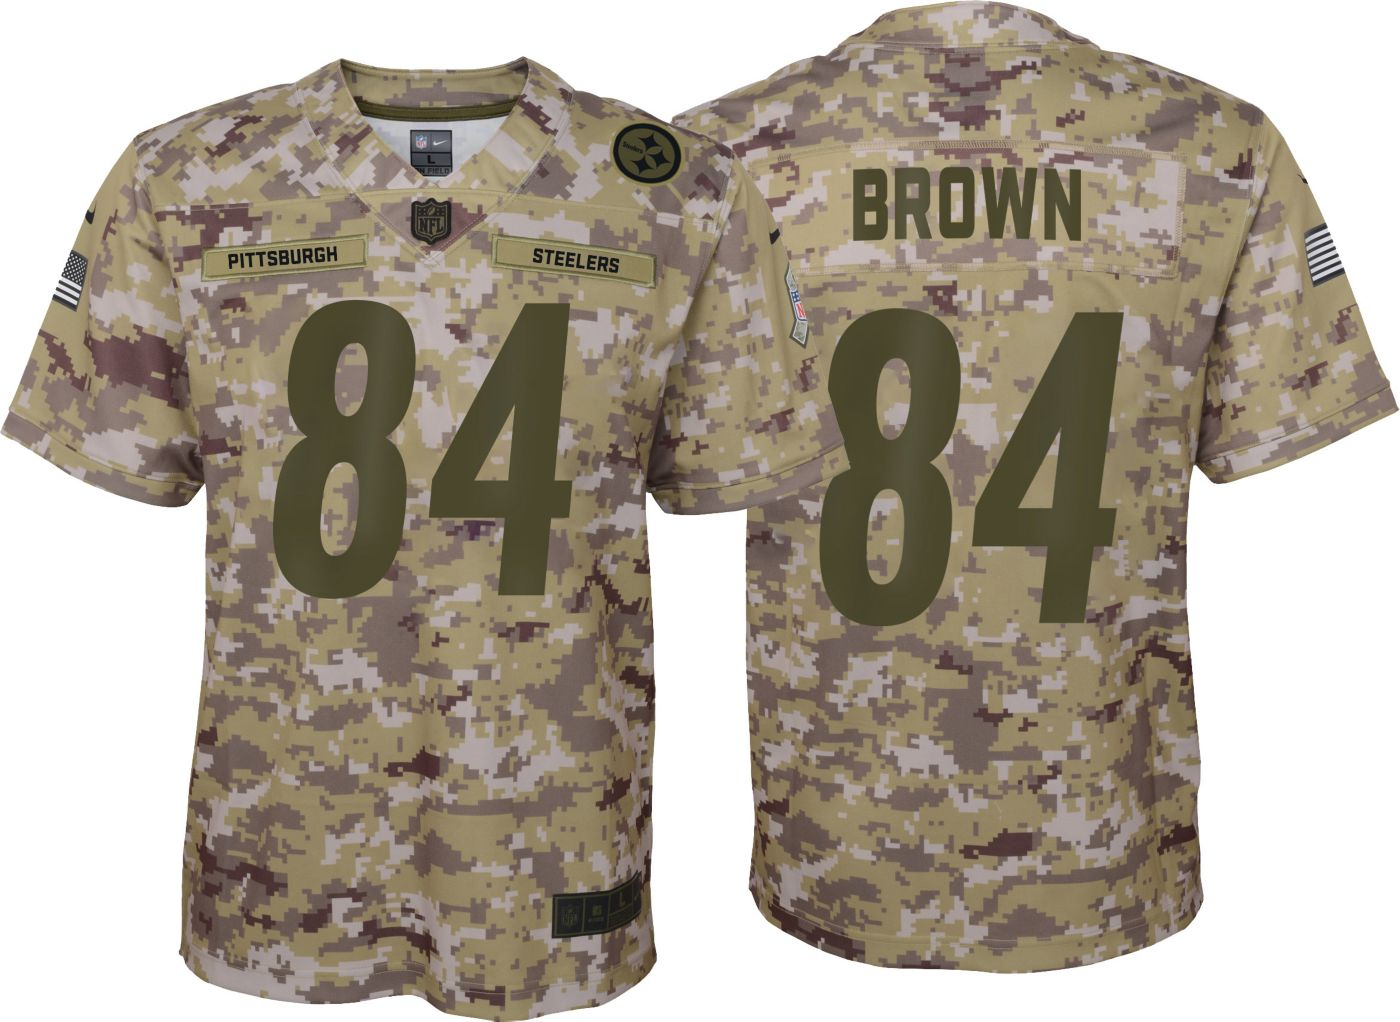 Nike Youth Salute to Service Pittsburgh Steelers Antonio Brown #84 Camouflage Game Jersey